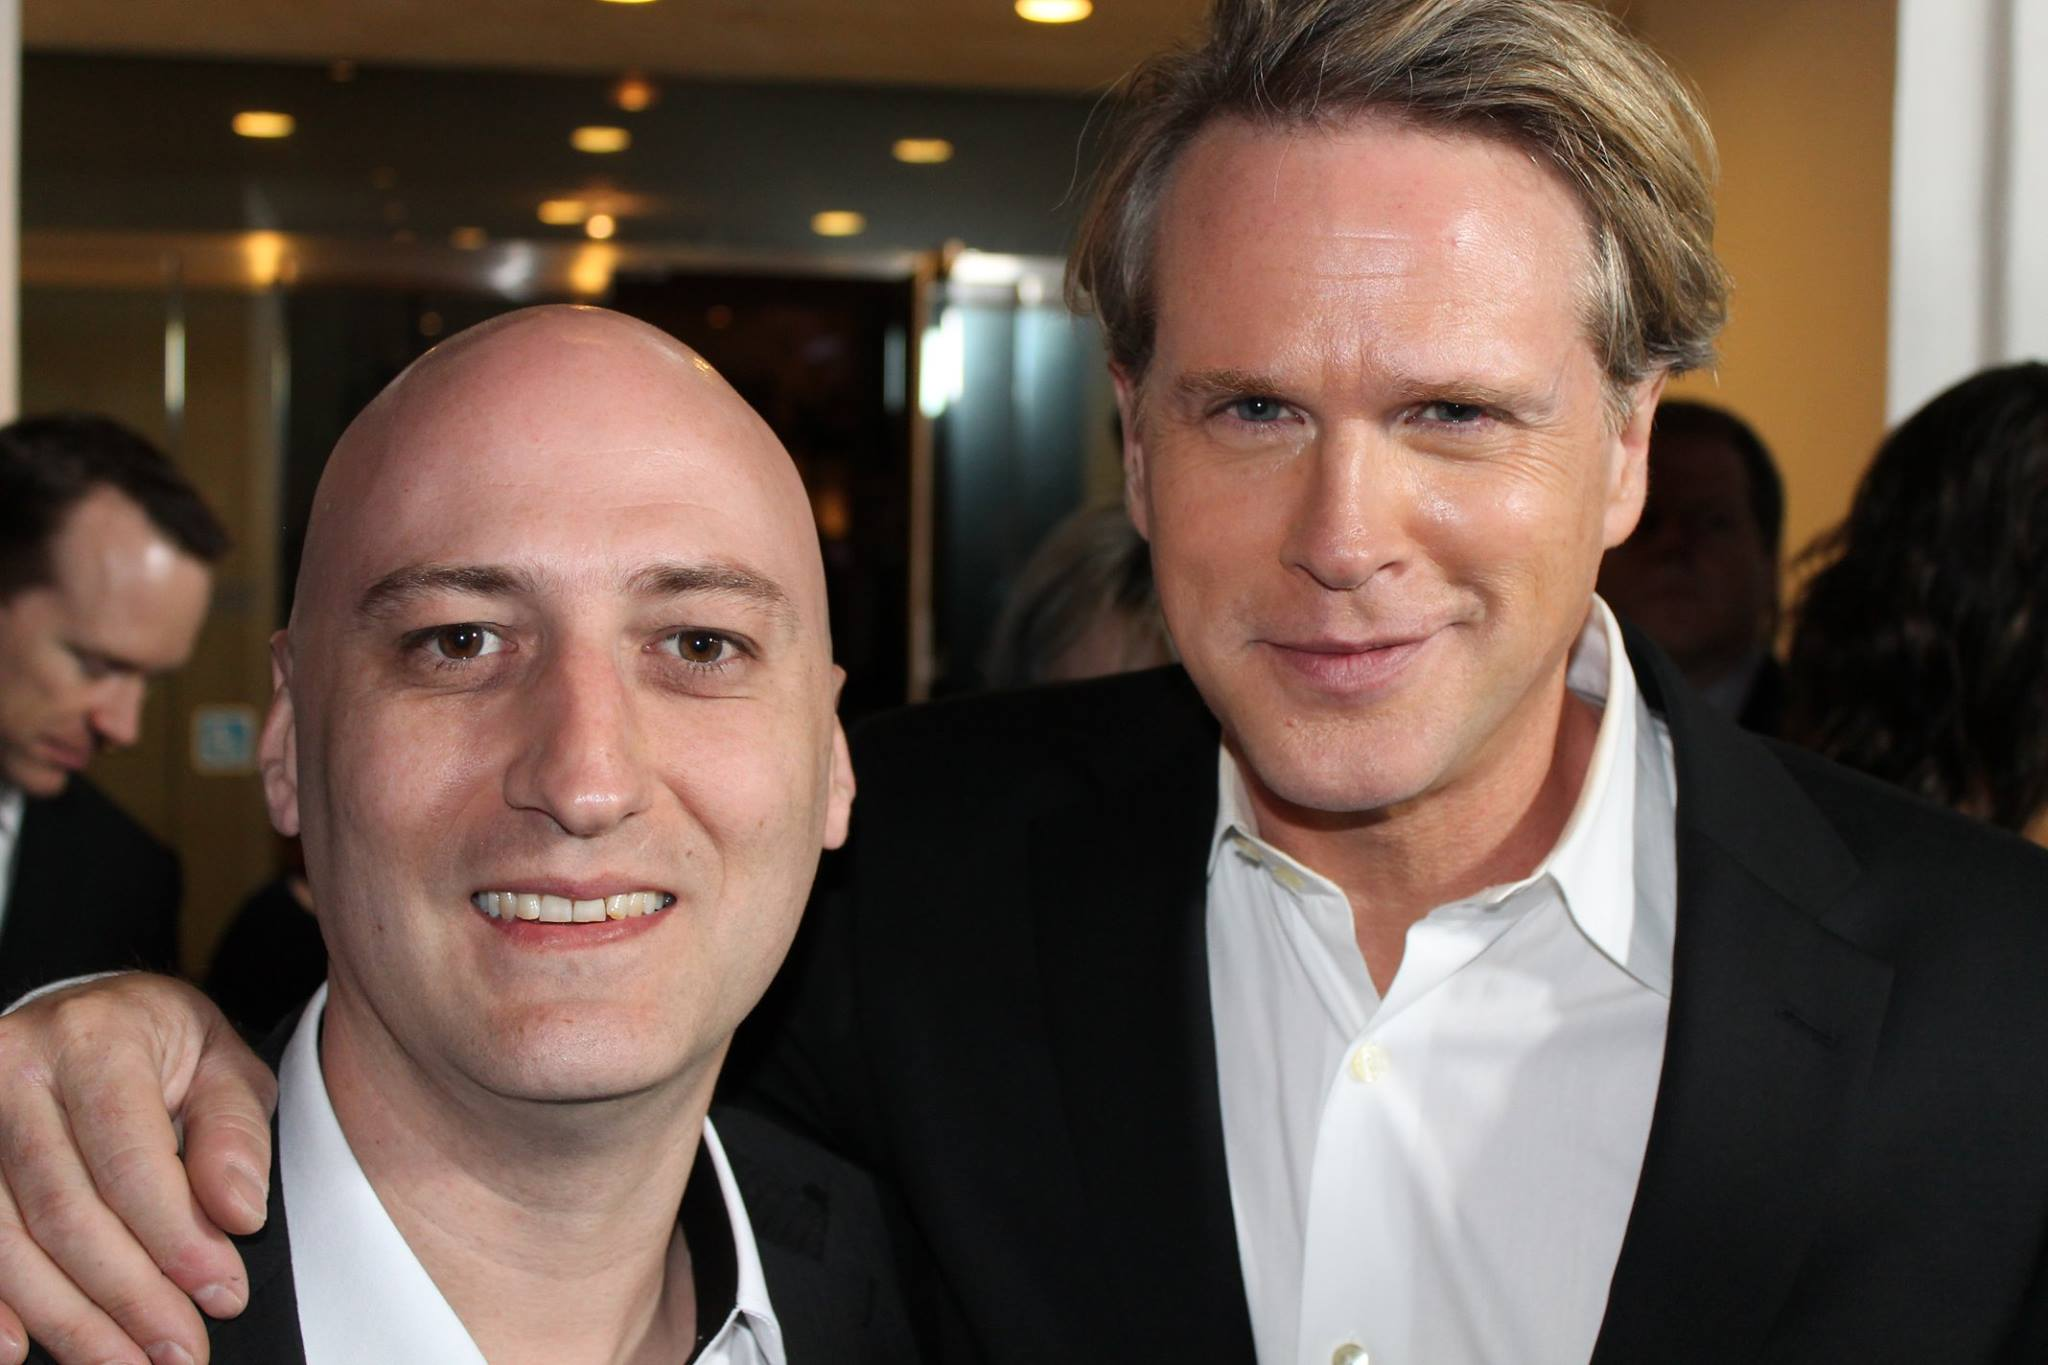 Cary Elwes and Mario Sévigny at an event for The Art of More (2015)